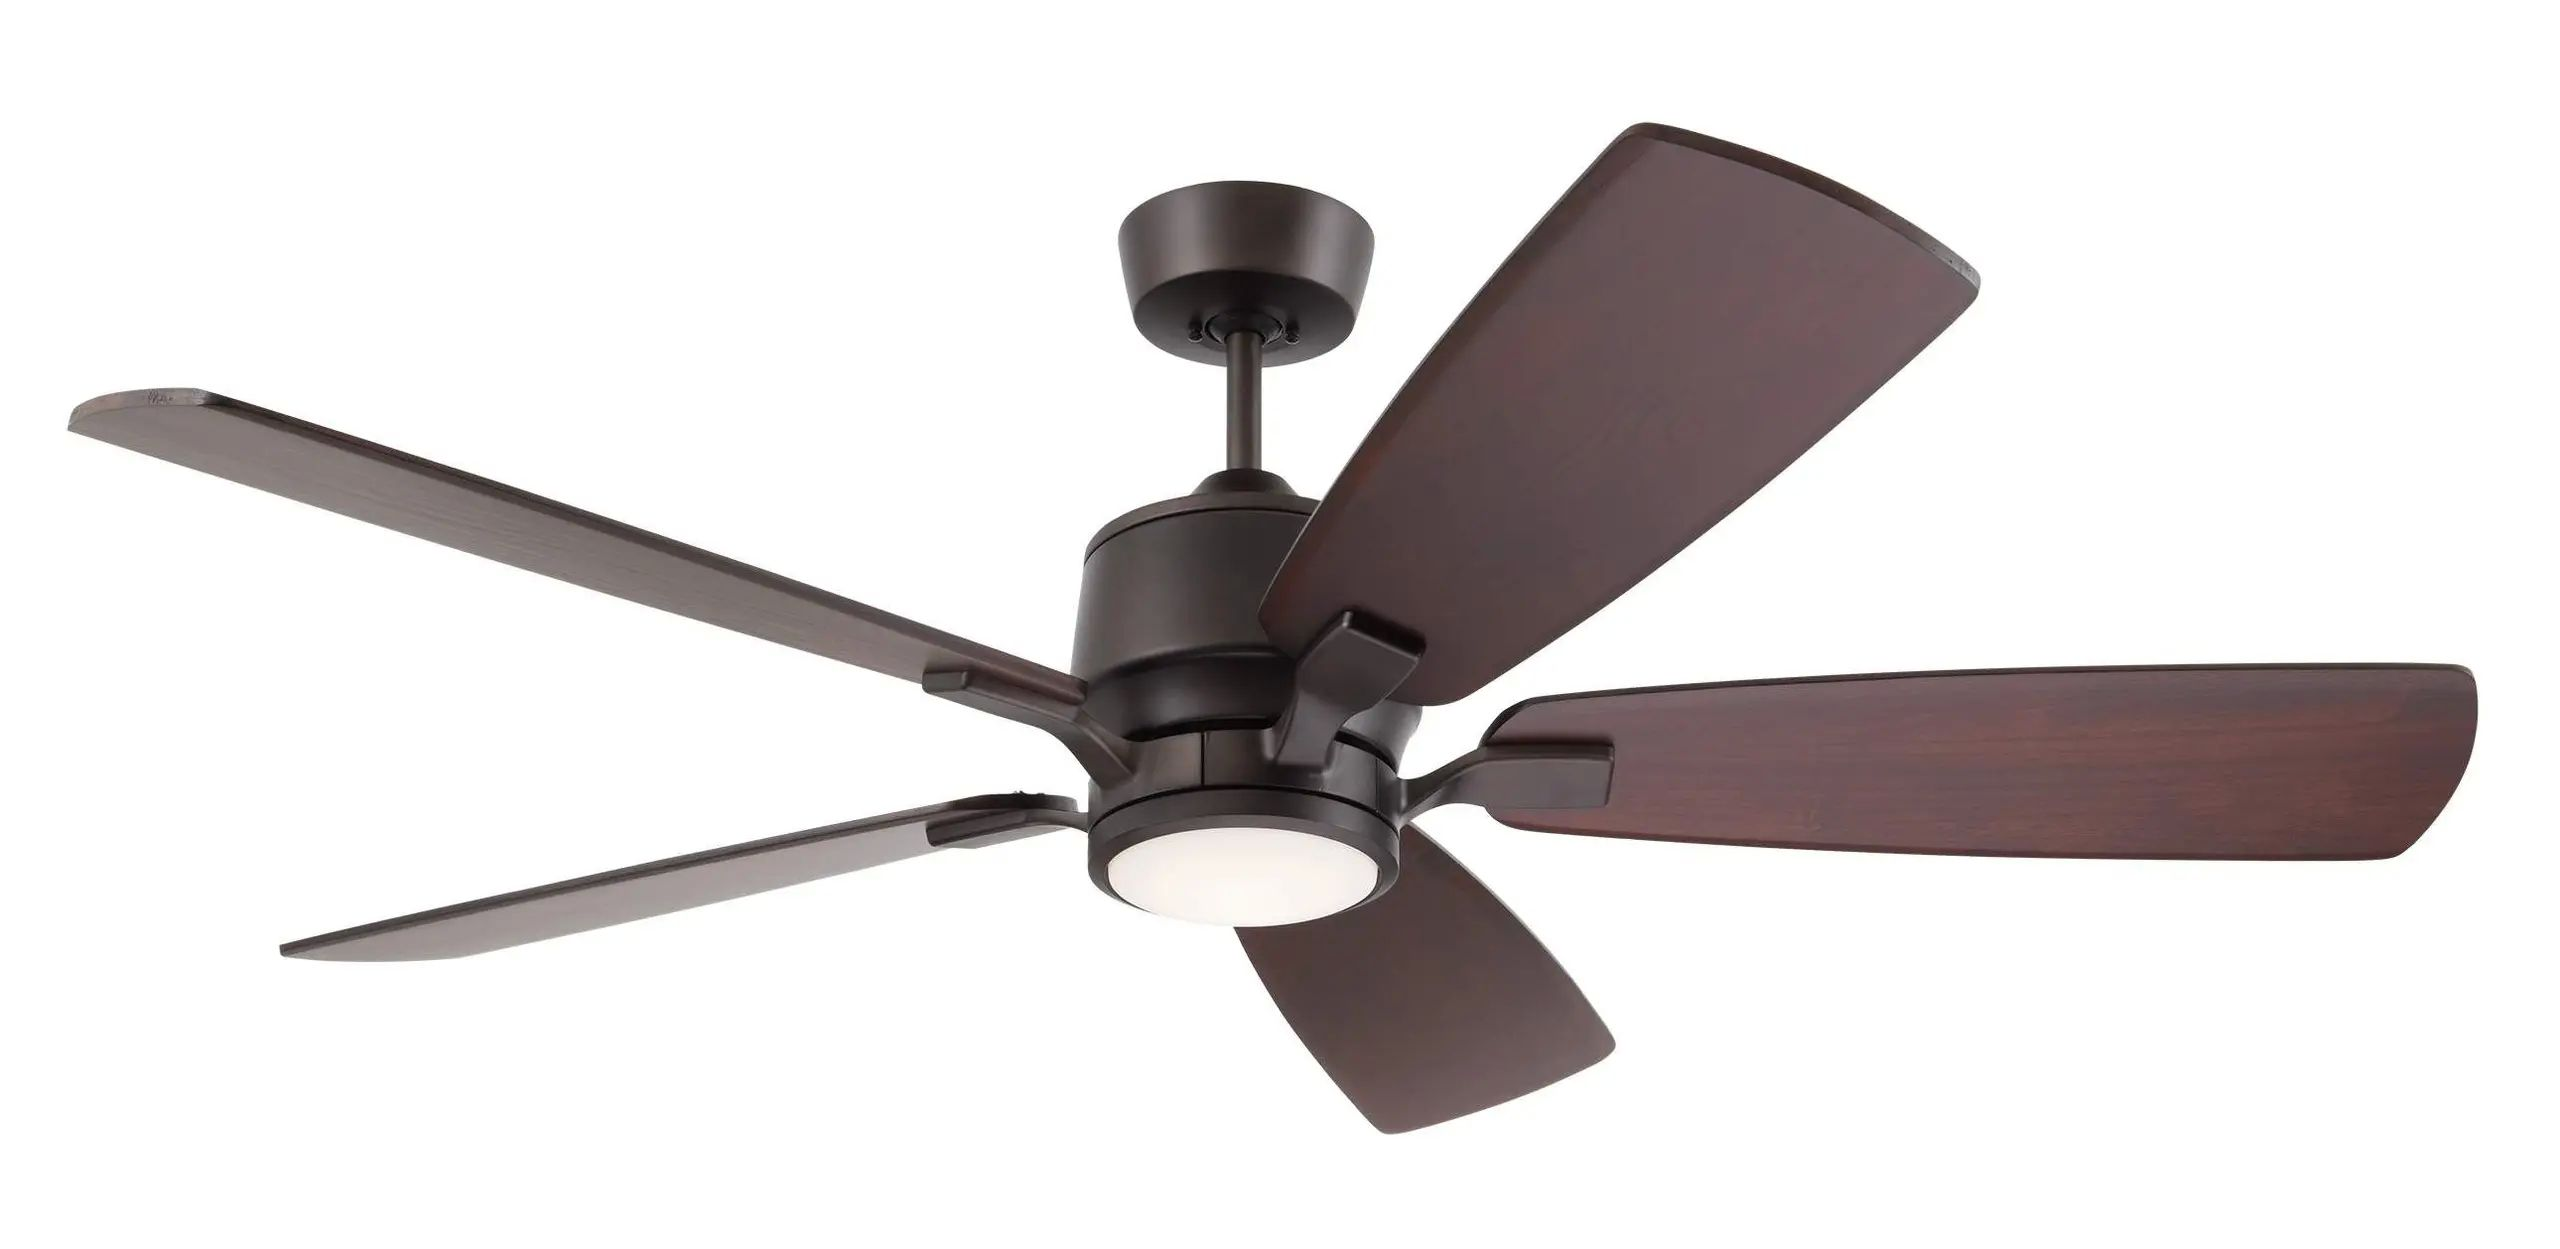 Emerson Icon ECO (DC EcoMotor) in Oil Rubbed Bronze Ceiling Fan